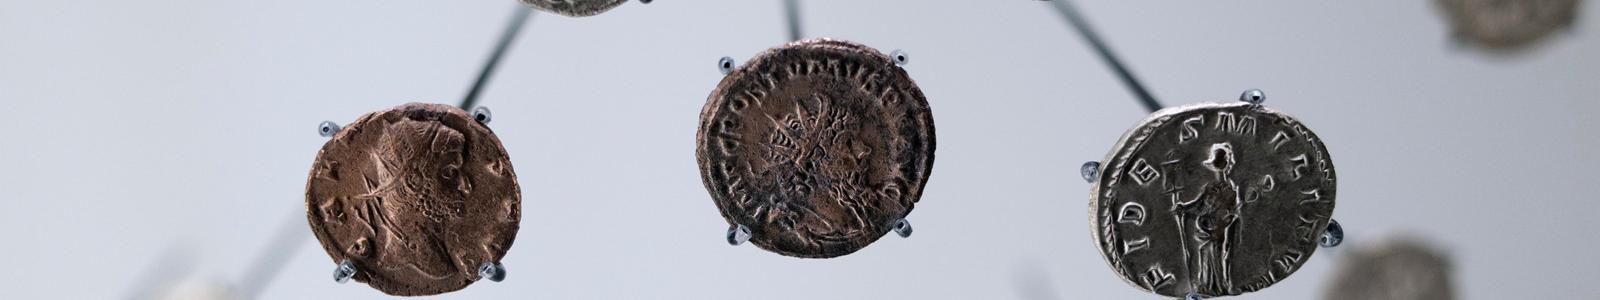 Half a coin, halfpenny, part of a hoard found at White Lane, Greywell, Mapledurwell and Up Nately, Hampshire in 1989, issued by Henry III, minted at Canterbury, Kent, 1248-1250